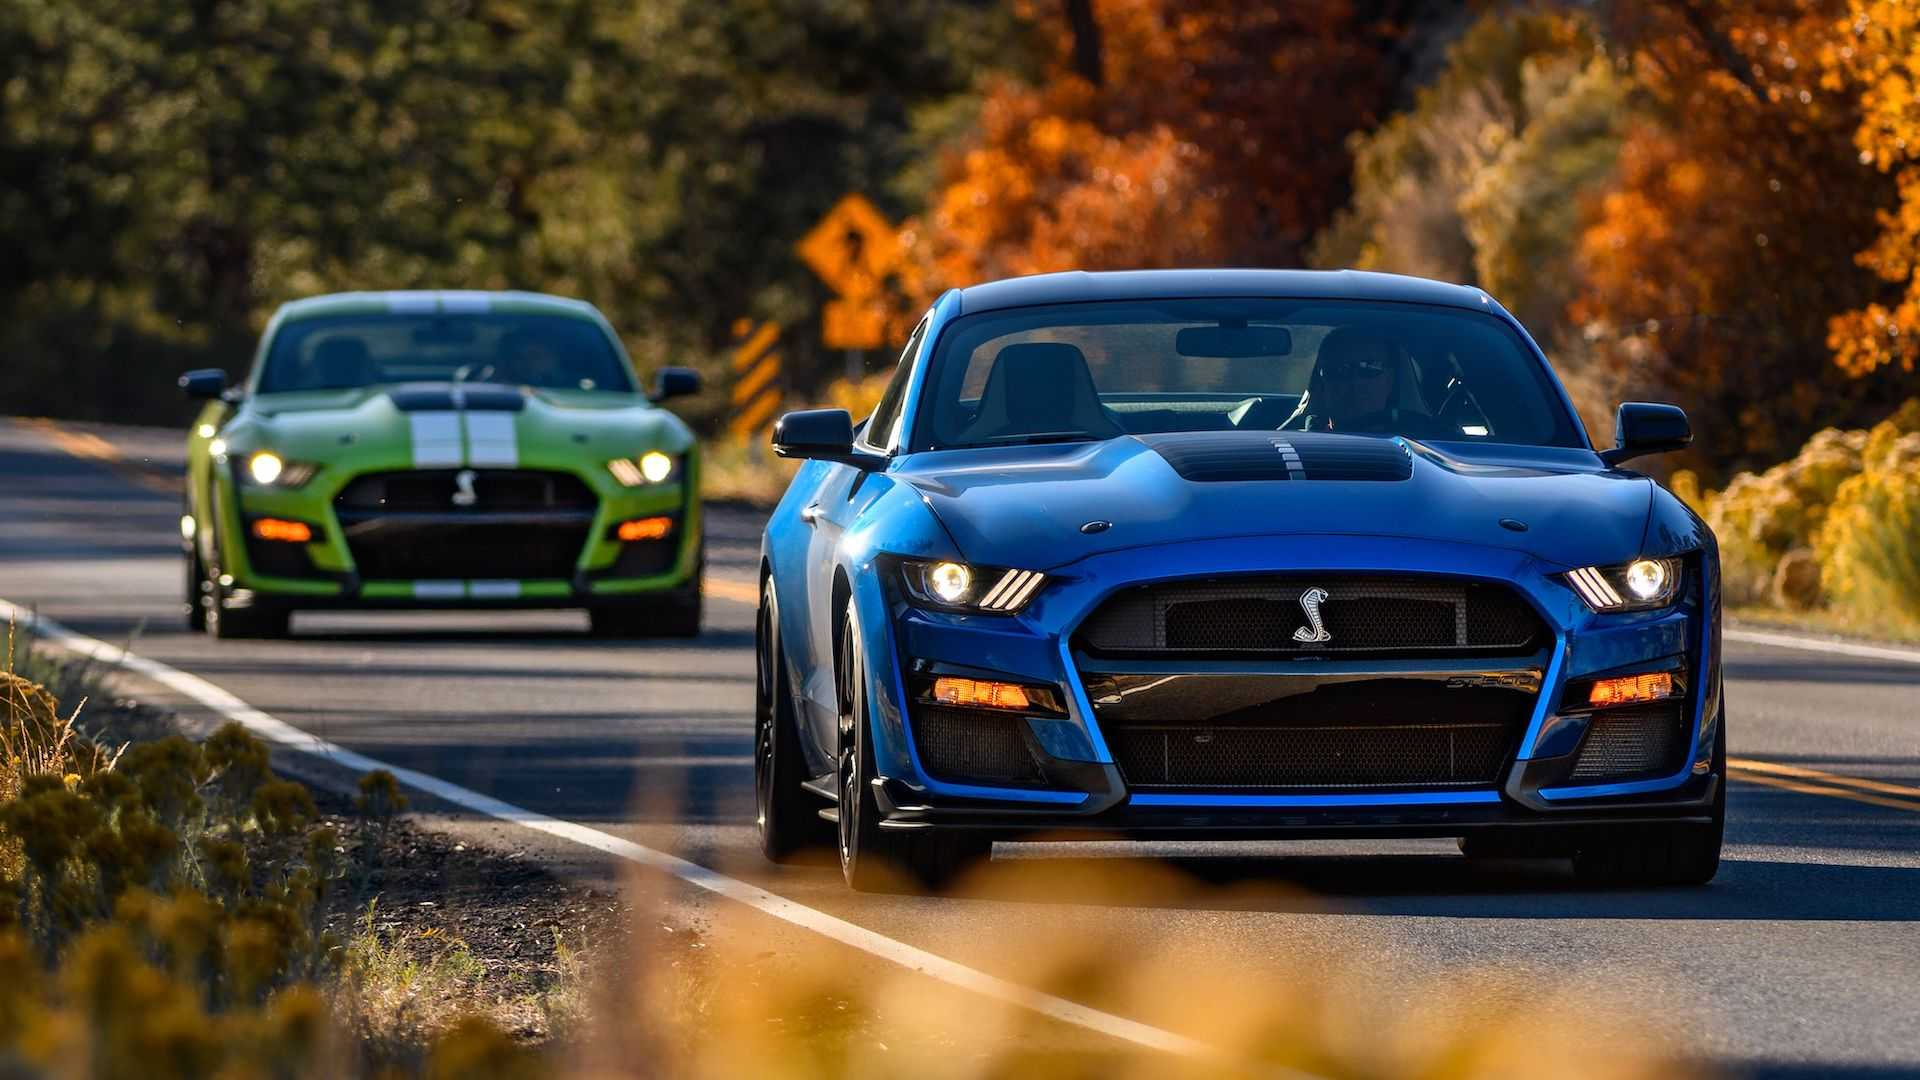 New Ford Mustang Coming 4, According To Company